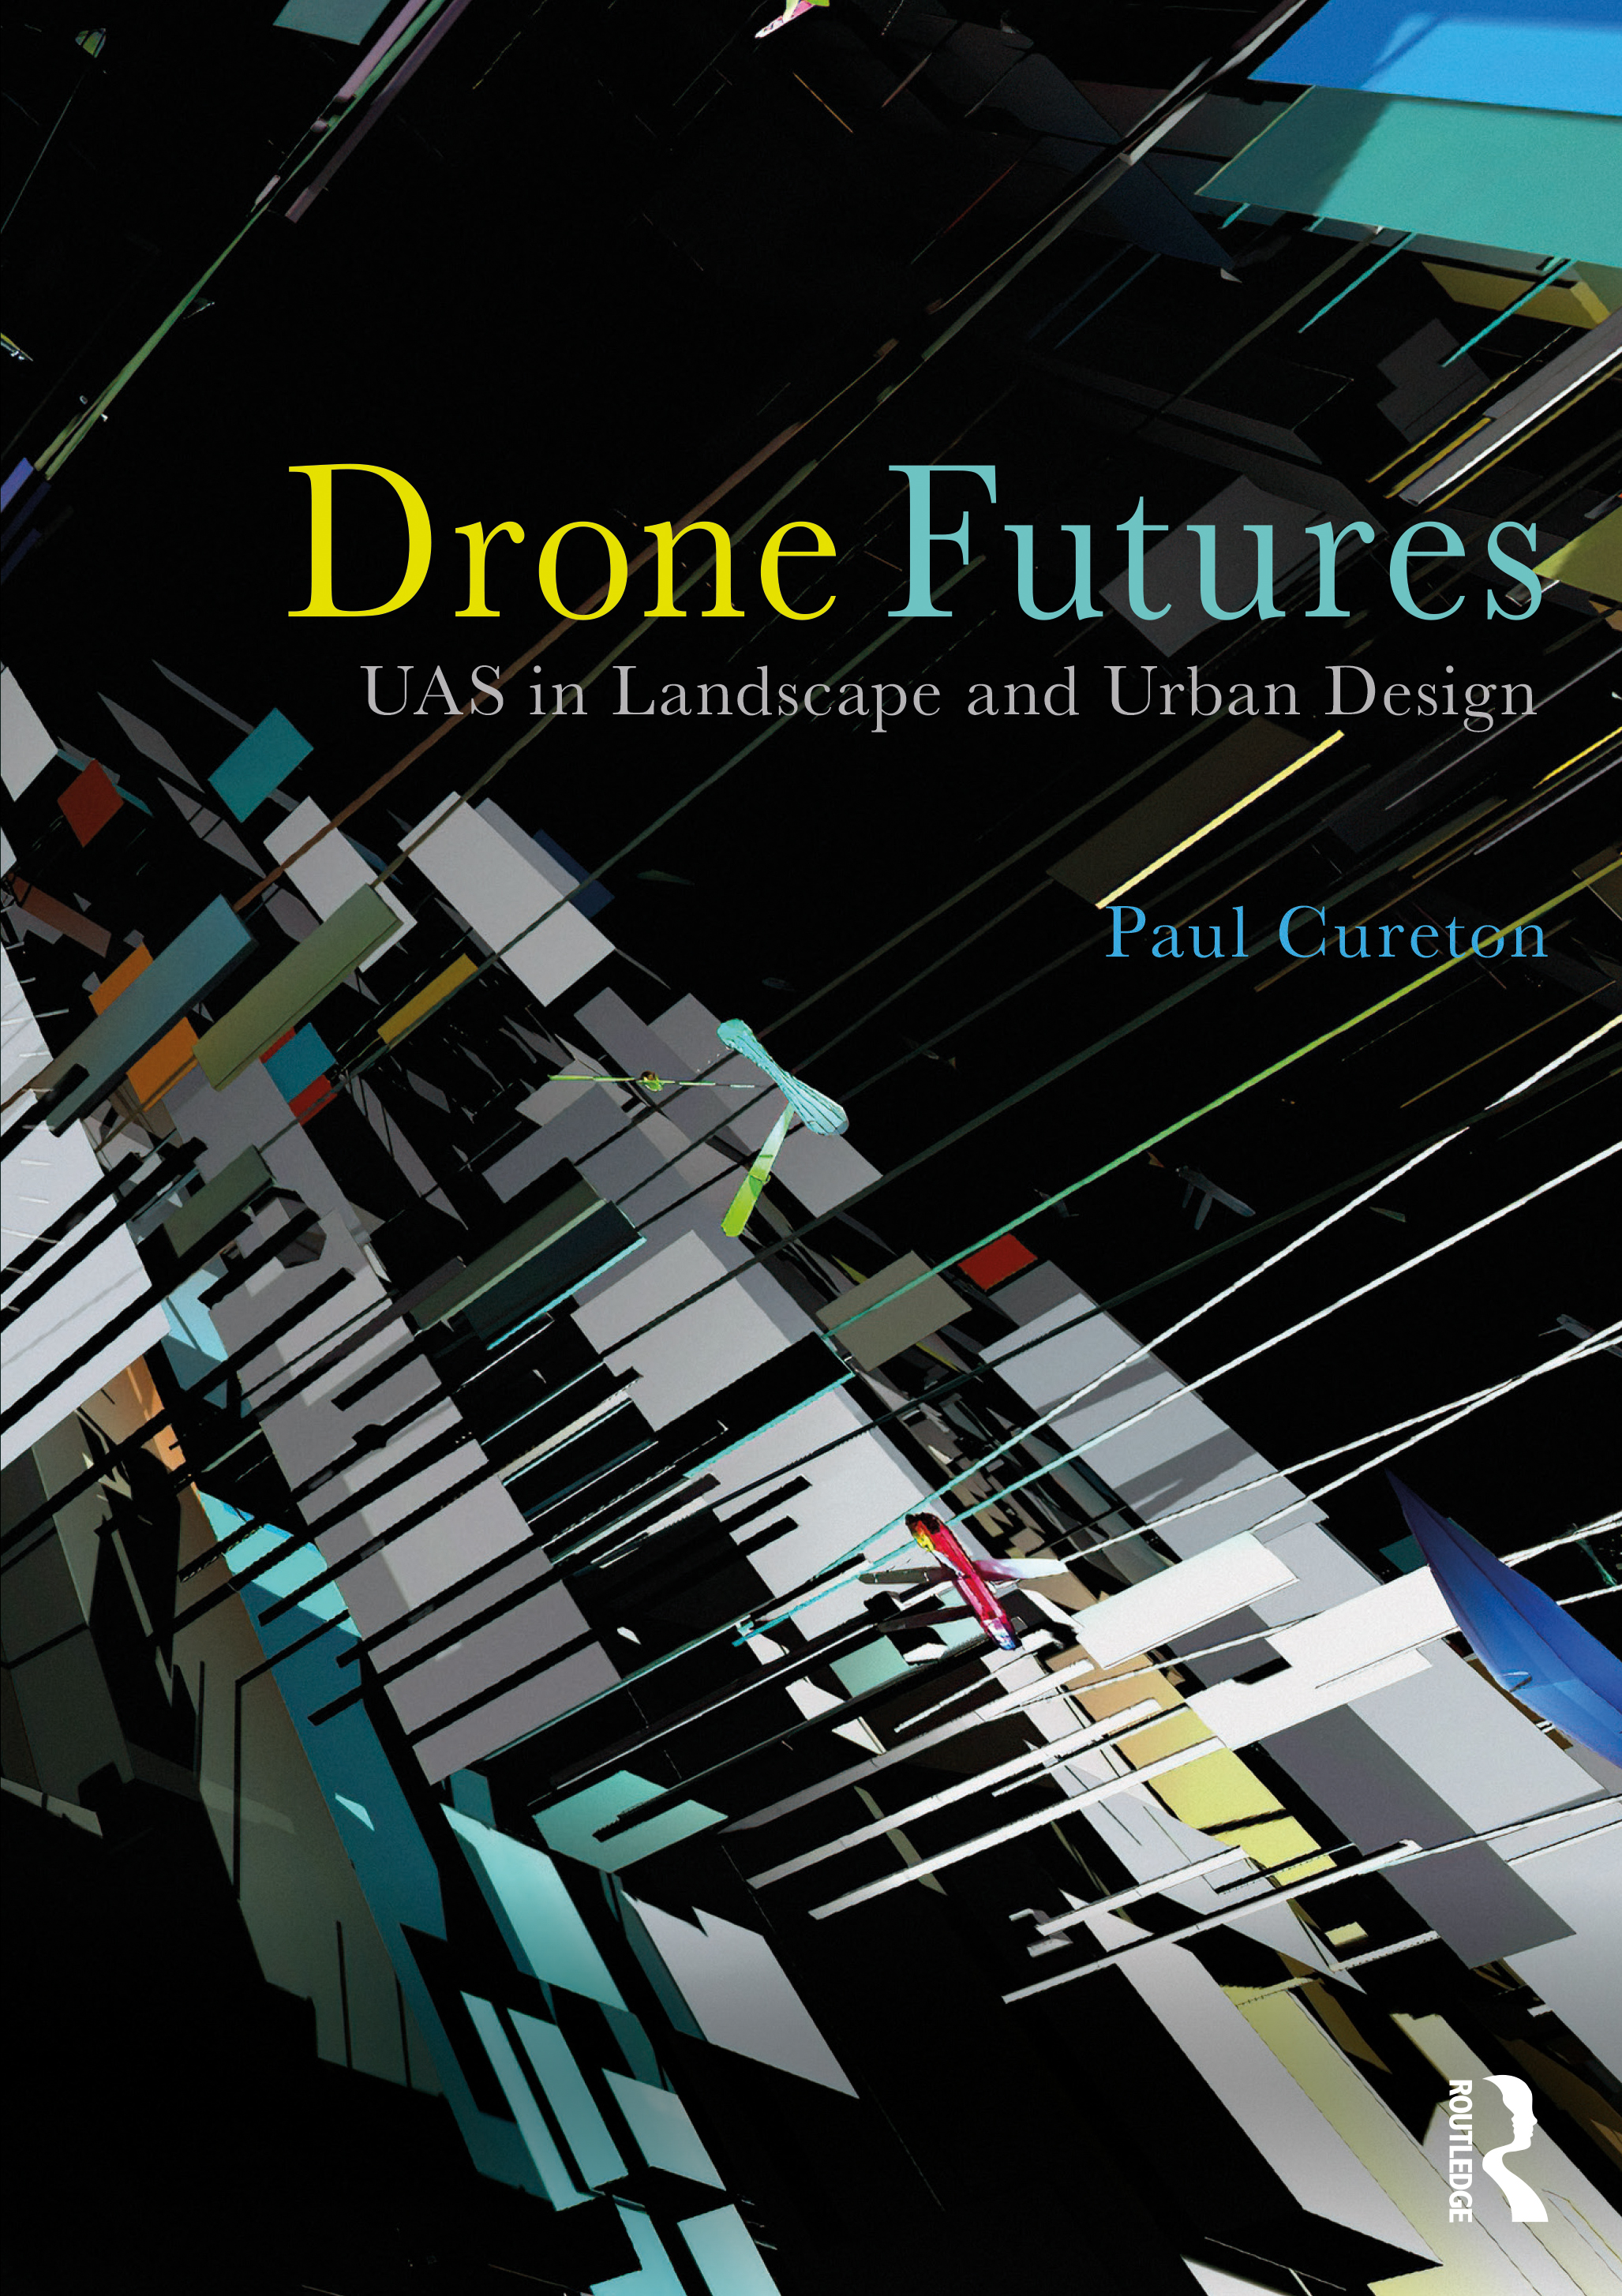 Drone Futures: UAS in Landscape and Urban Design book cover